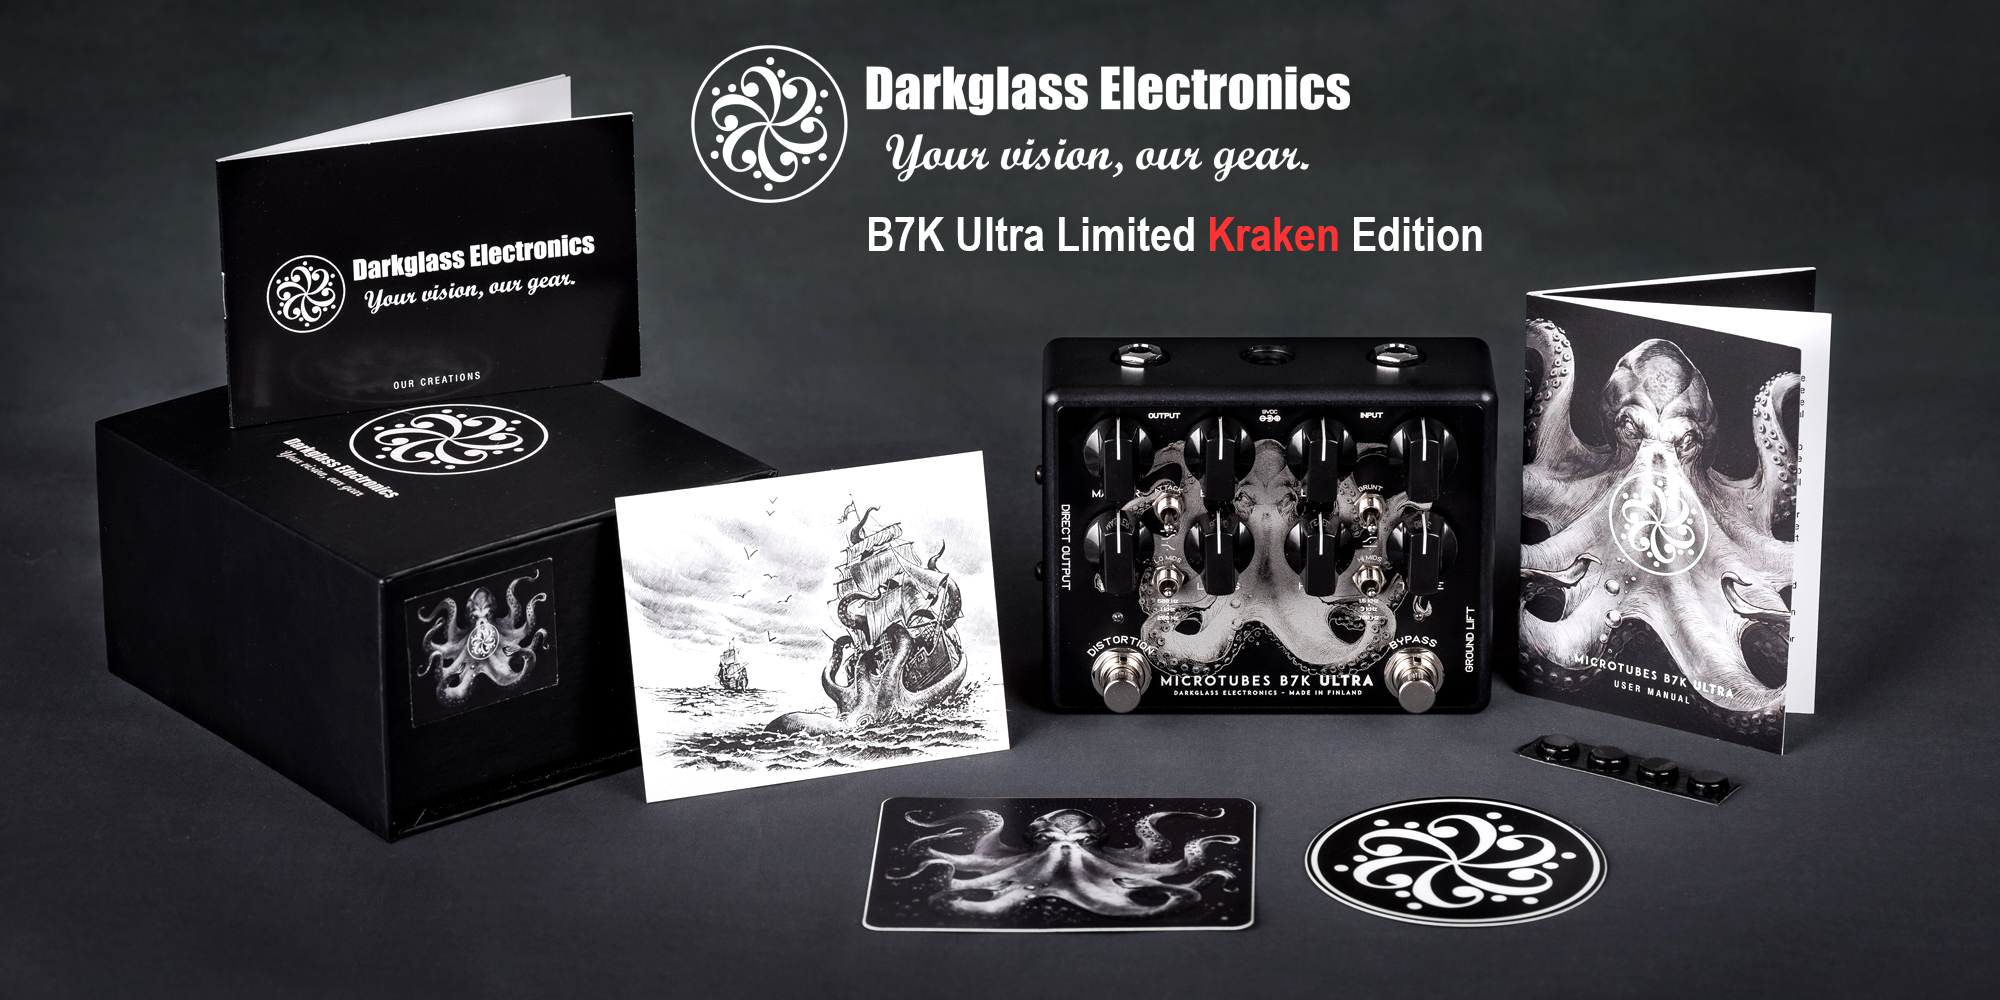 Darkglass Electronics 新製品 B7K Ultra Limited Kraken Edition リリース!